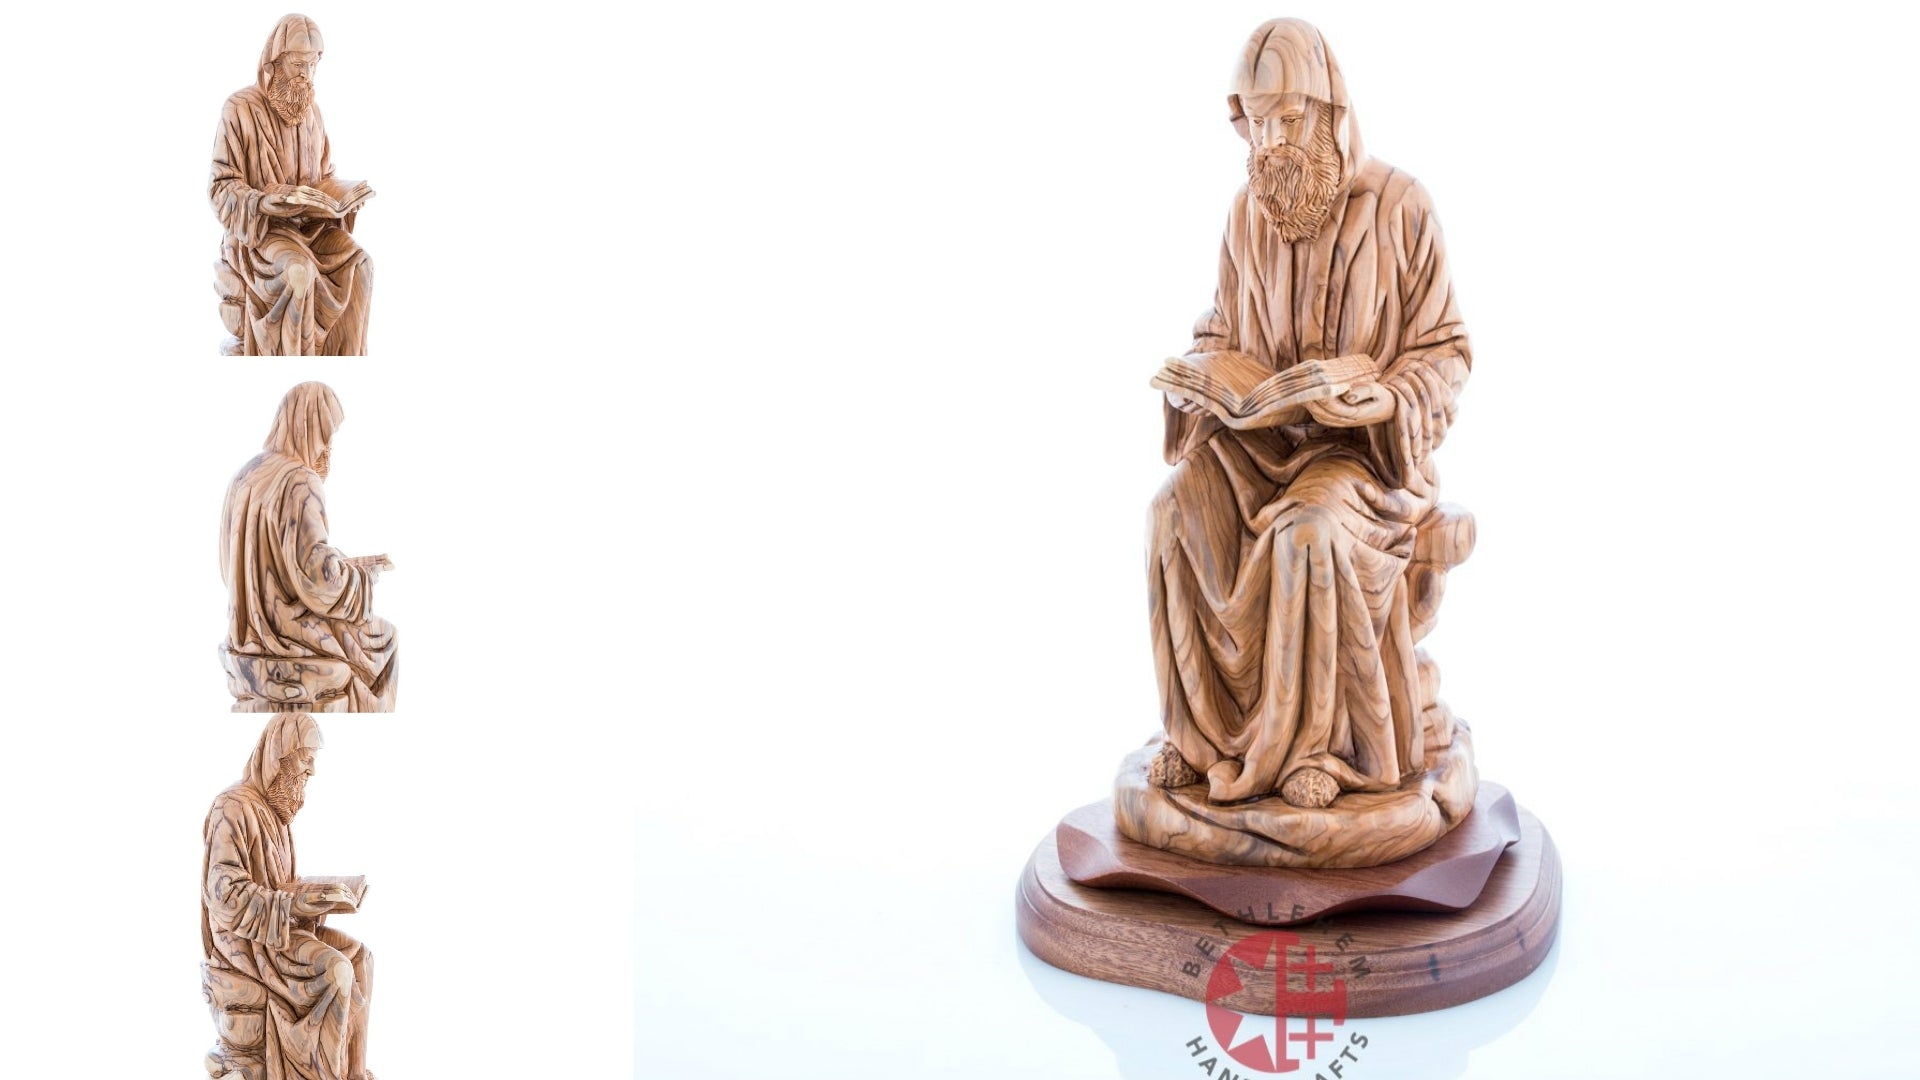 Carved Olive Wood Sitting Saint Charbel Statue